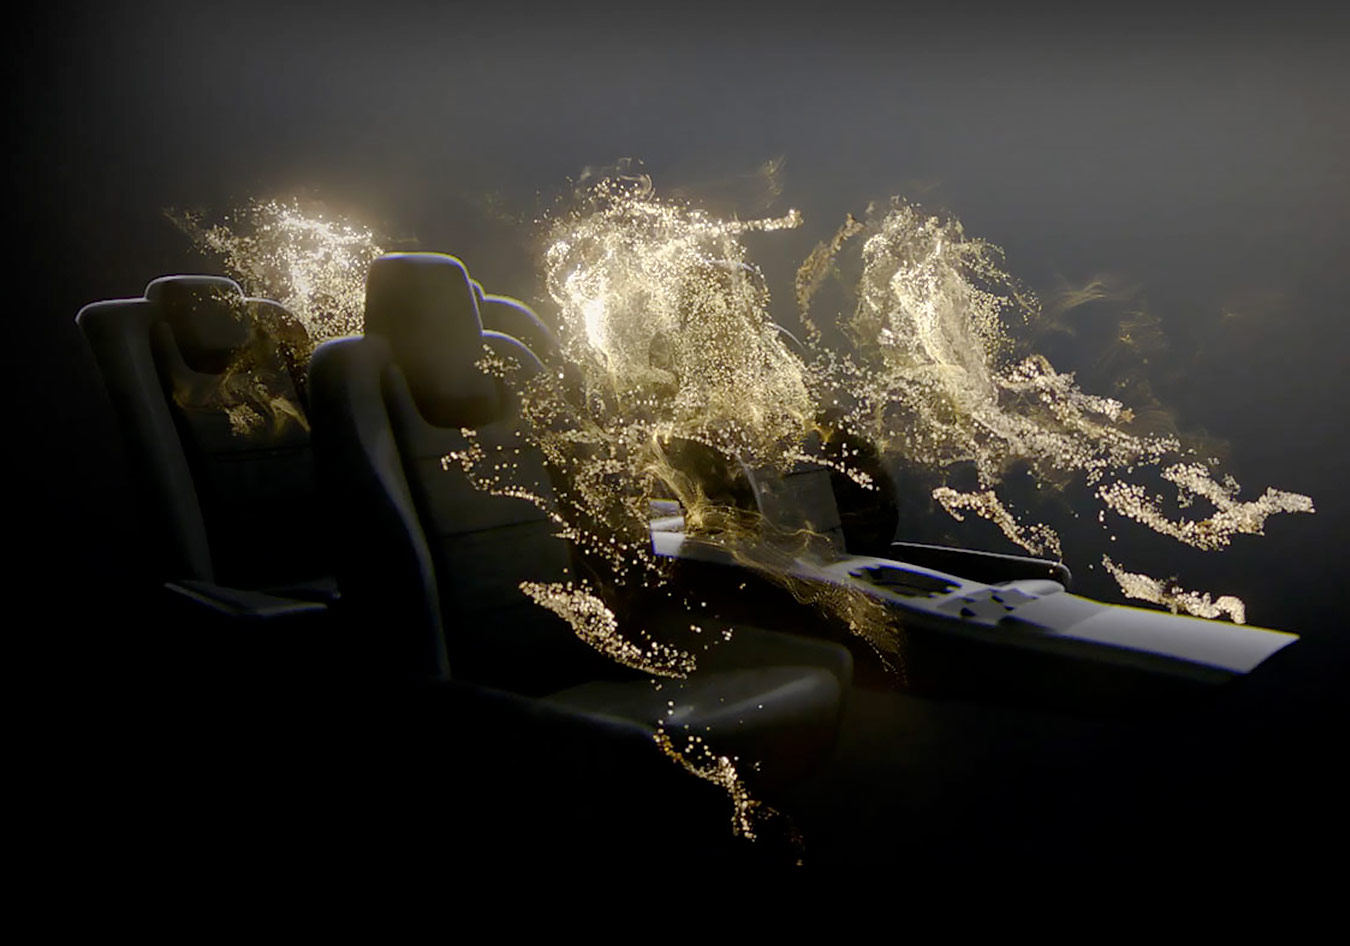 Meridian concept image of light floating around the seats of a Jaguar vehicle